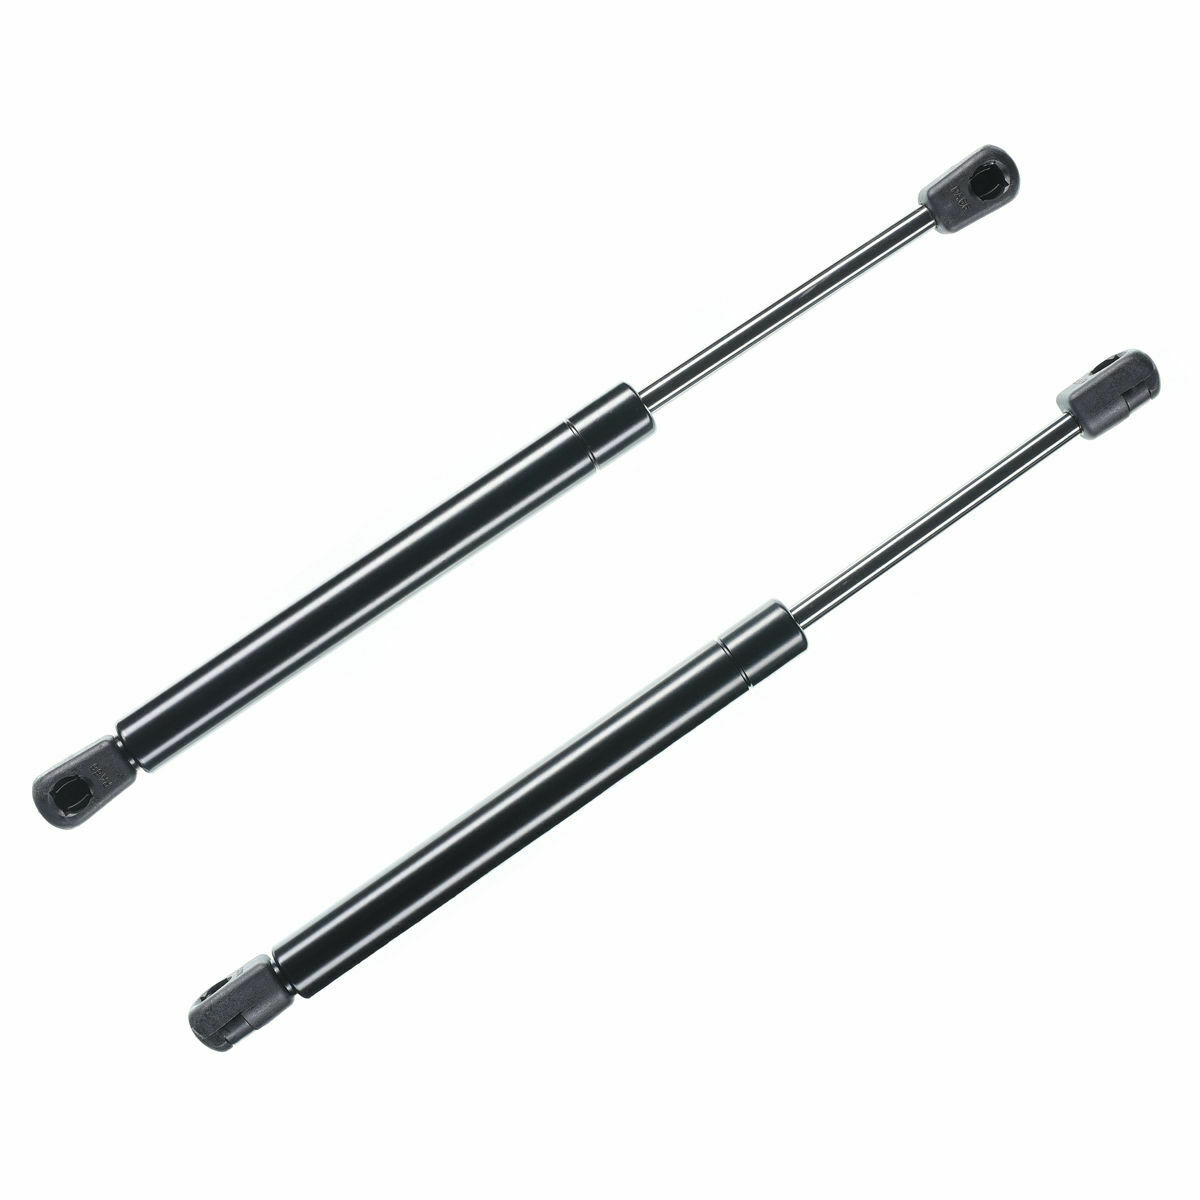 2 PCS Rear Tailgate Lift Supports Shock Strut for Audi A4